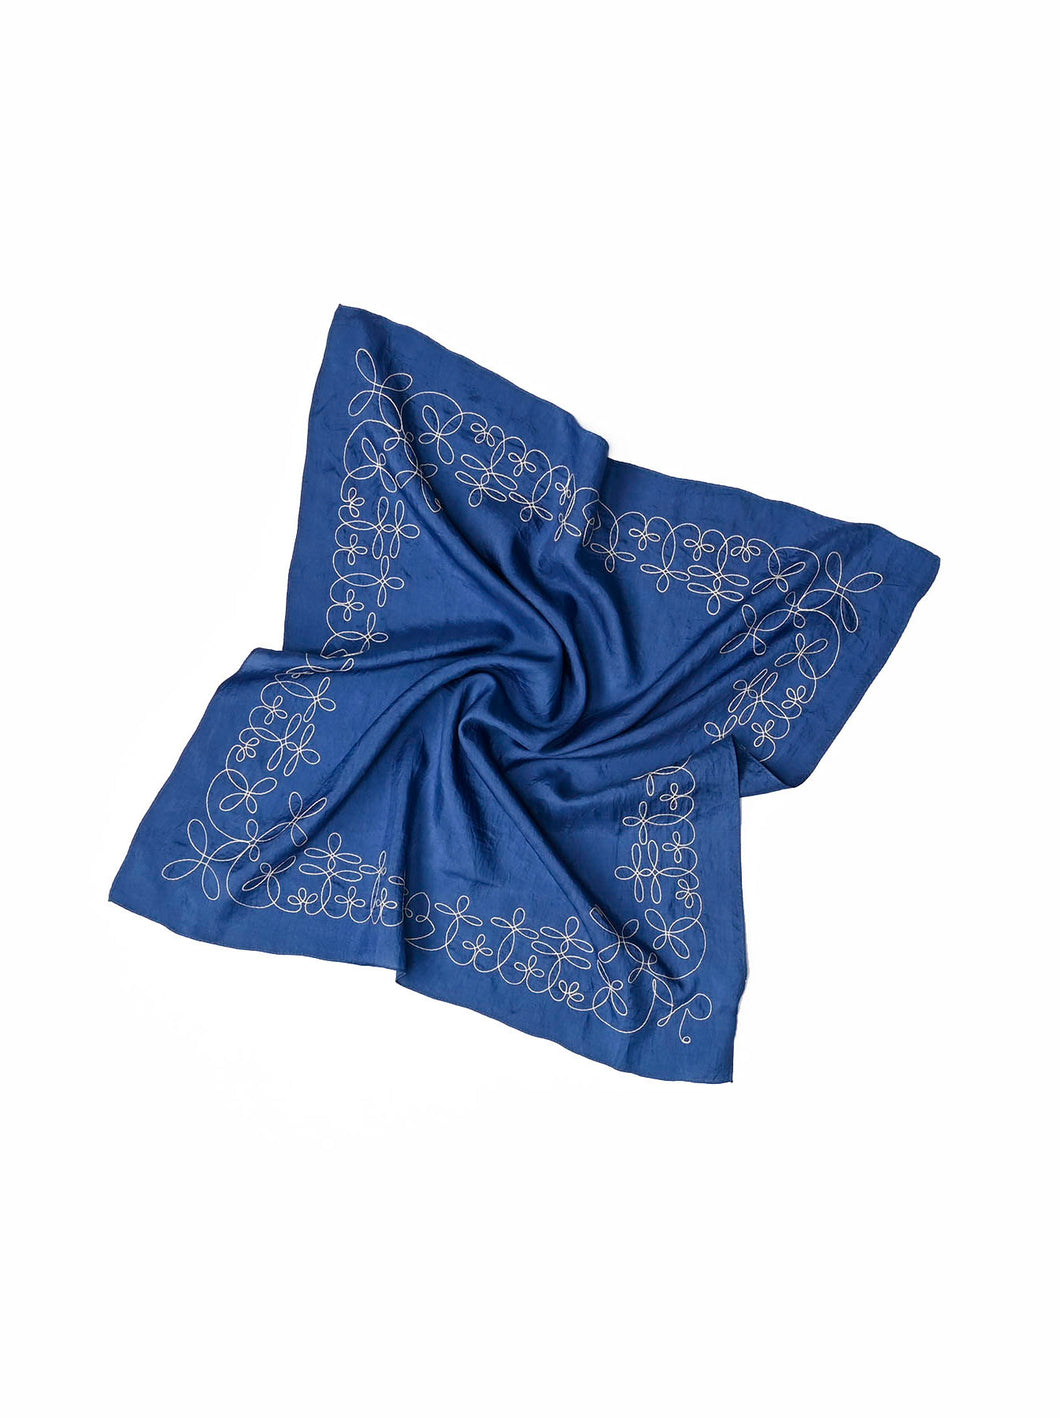 Code Cotton Embroidery Bandana Flower in ai